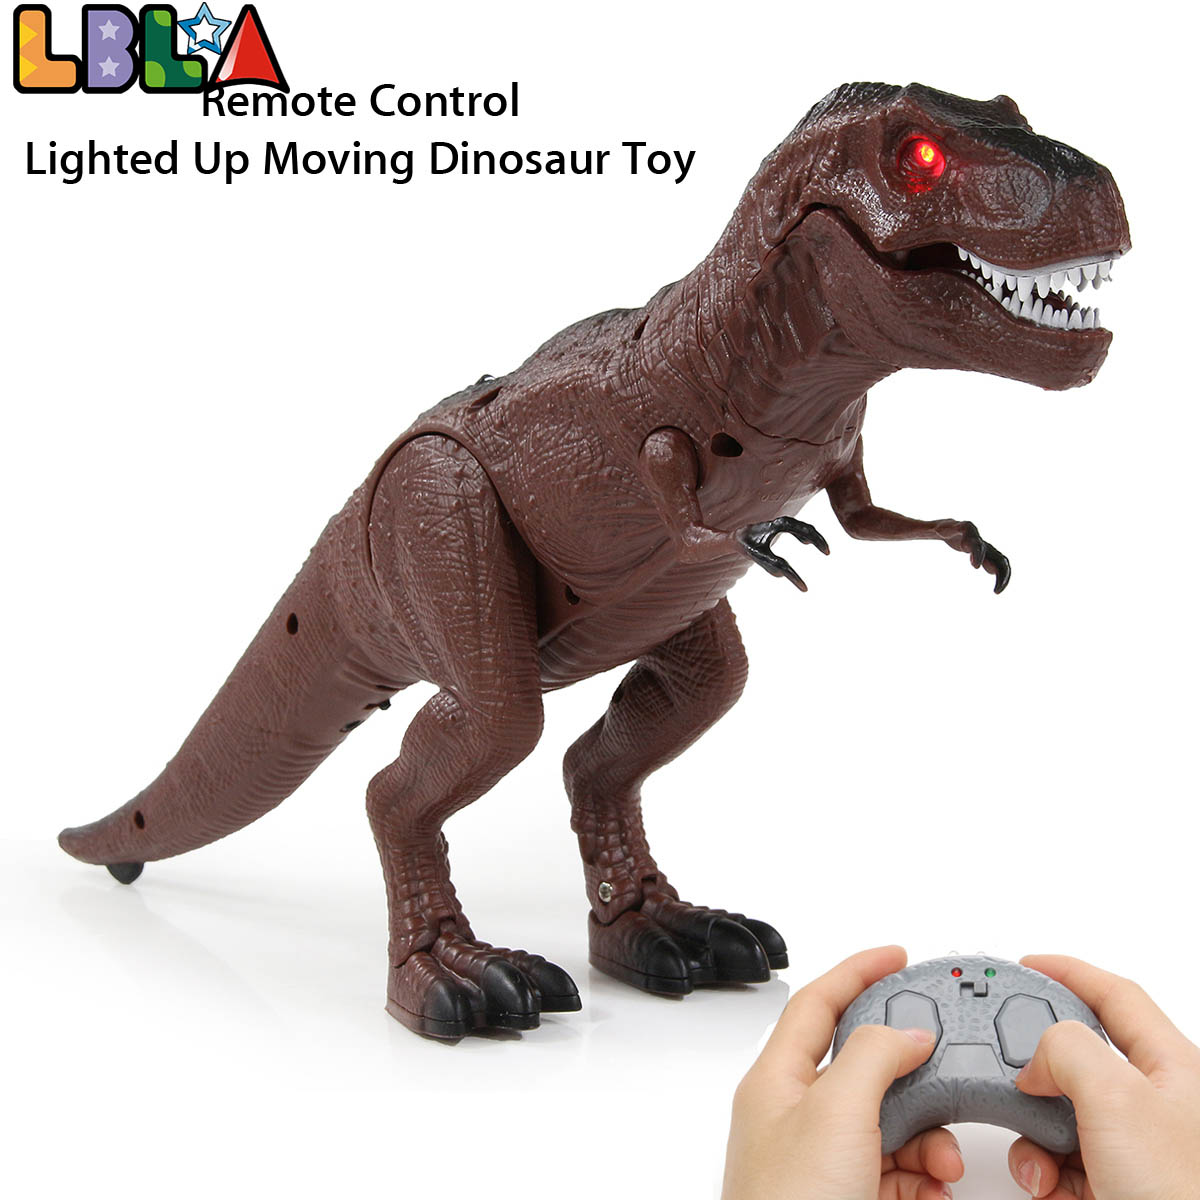 Intelligent Animal Model Toy Infrared Remote Control Walking Dinosaur Toy for KidsFigure Electric Toy RC Pet For Children Gift new infrared rc remote control centipede scolopendra creepy crawly toy gift